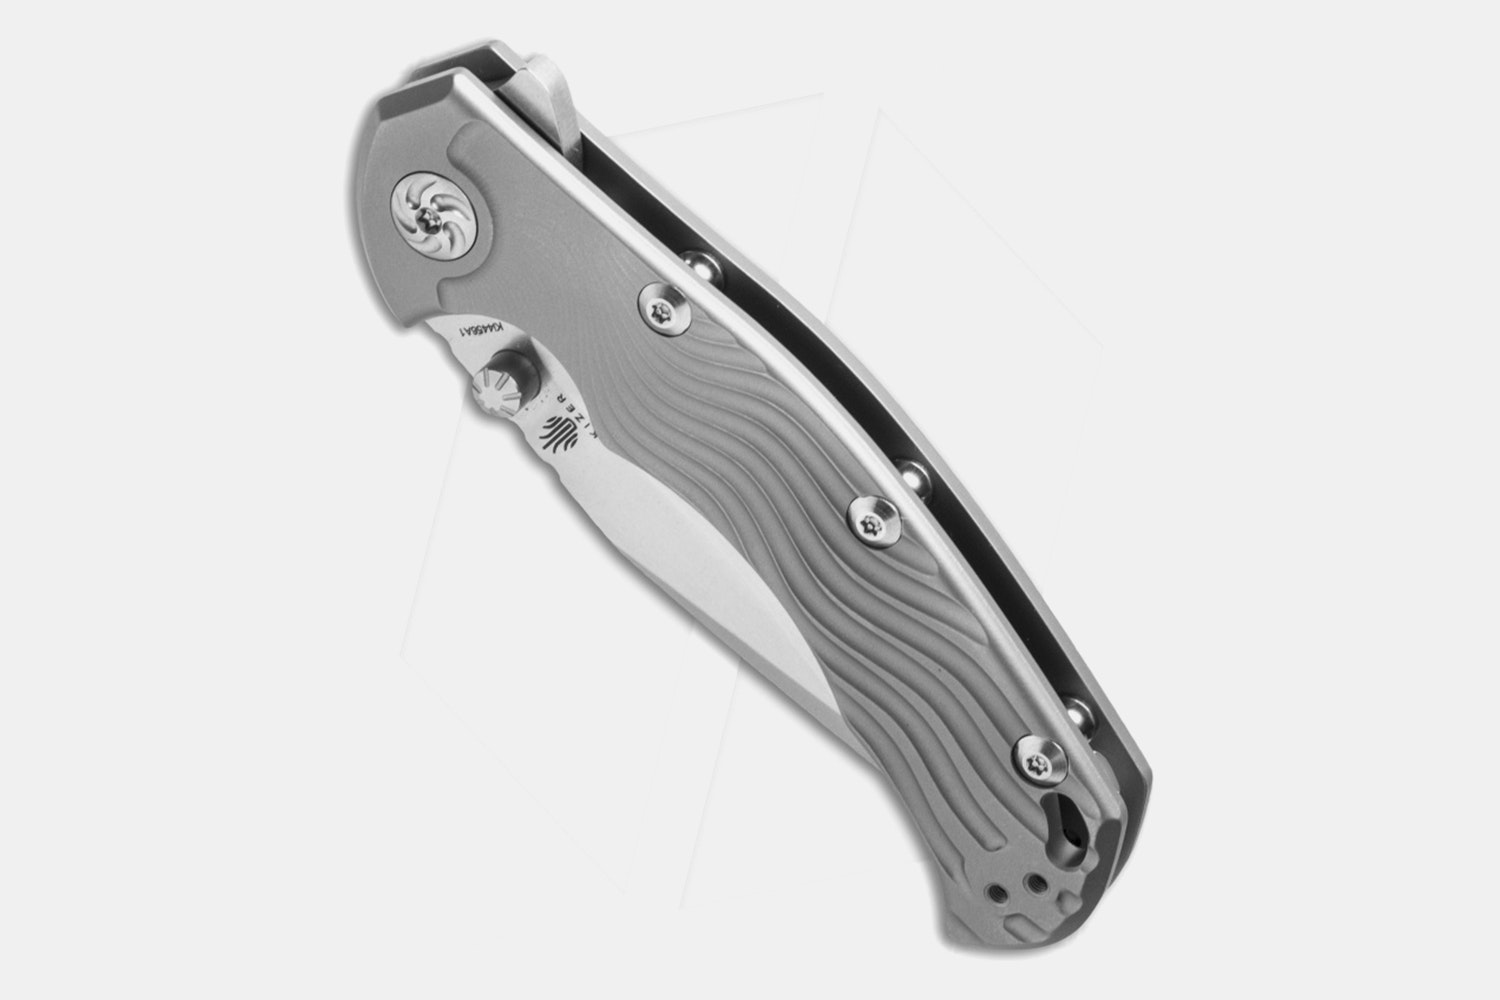 Kizer Ki4456A1 River Cat Frame Lock Knife